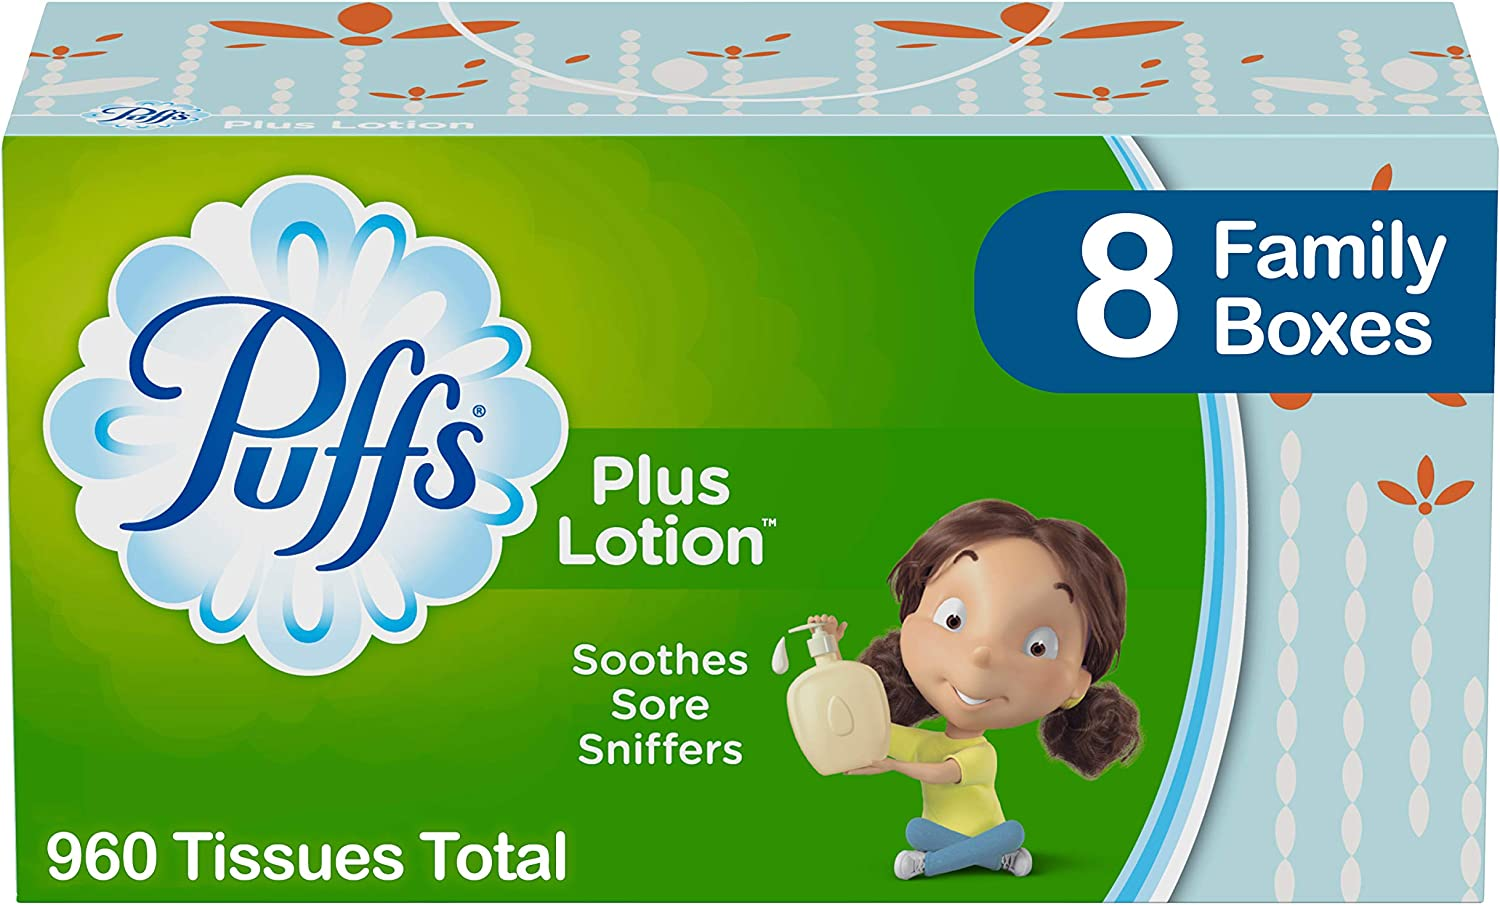 Puffs Plus Lotion Facial San Diego Mall Tissues 120 4 years warranty pe Family Boxes 8